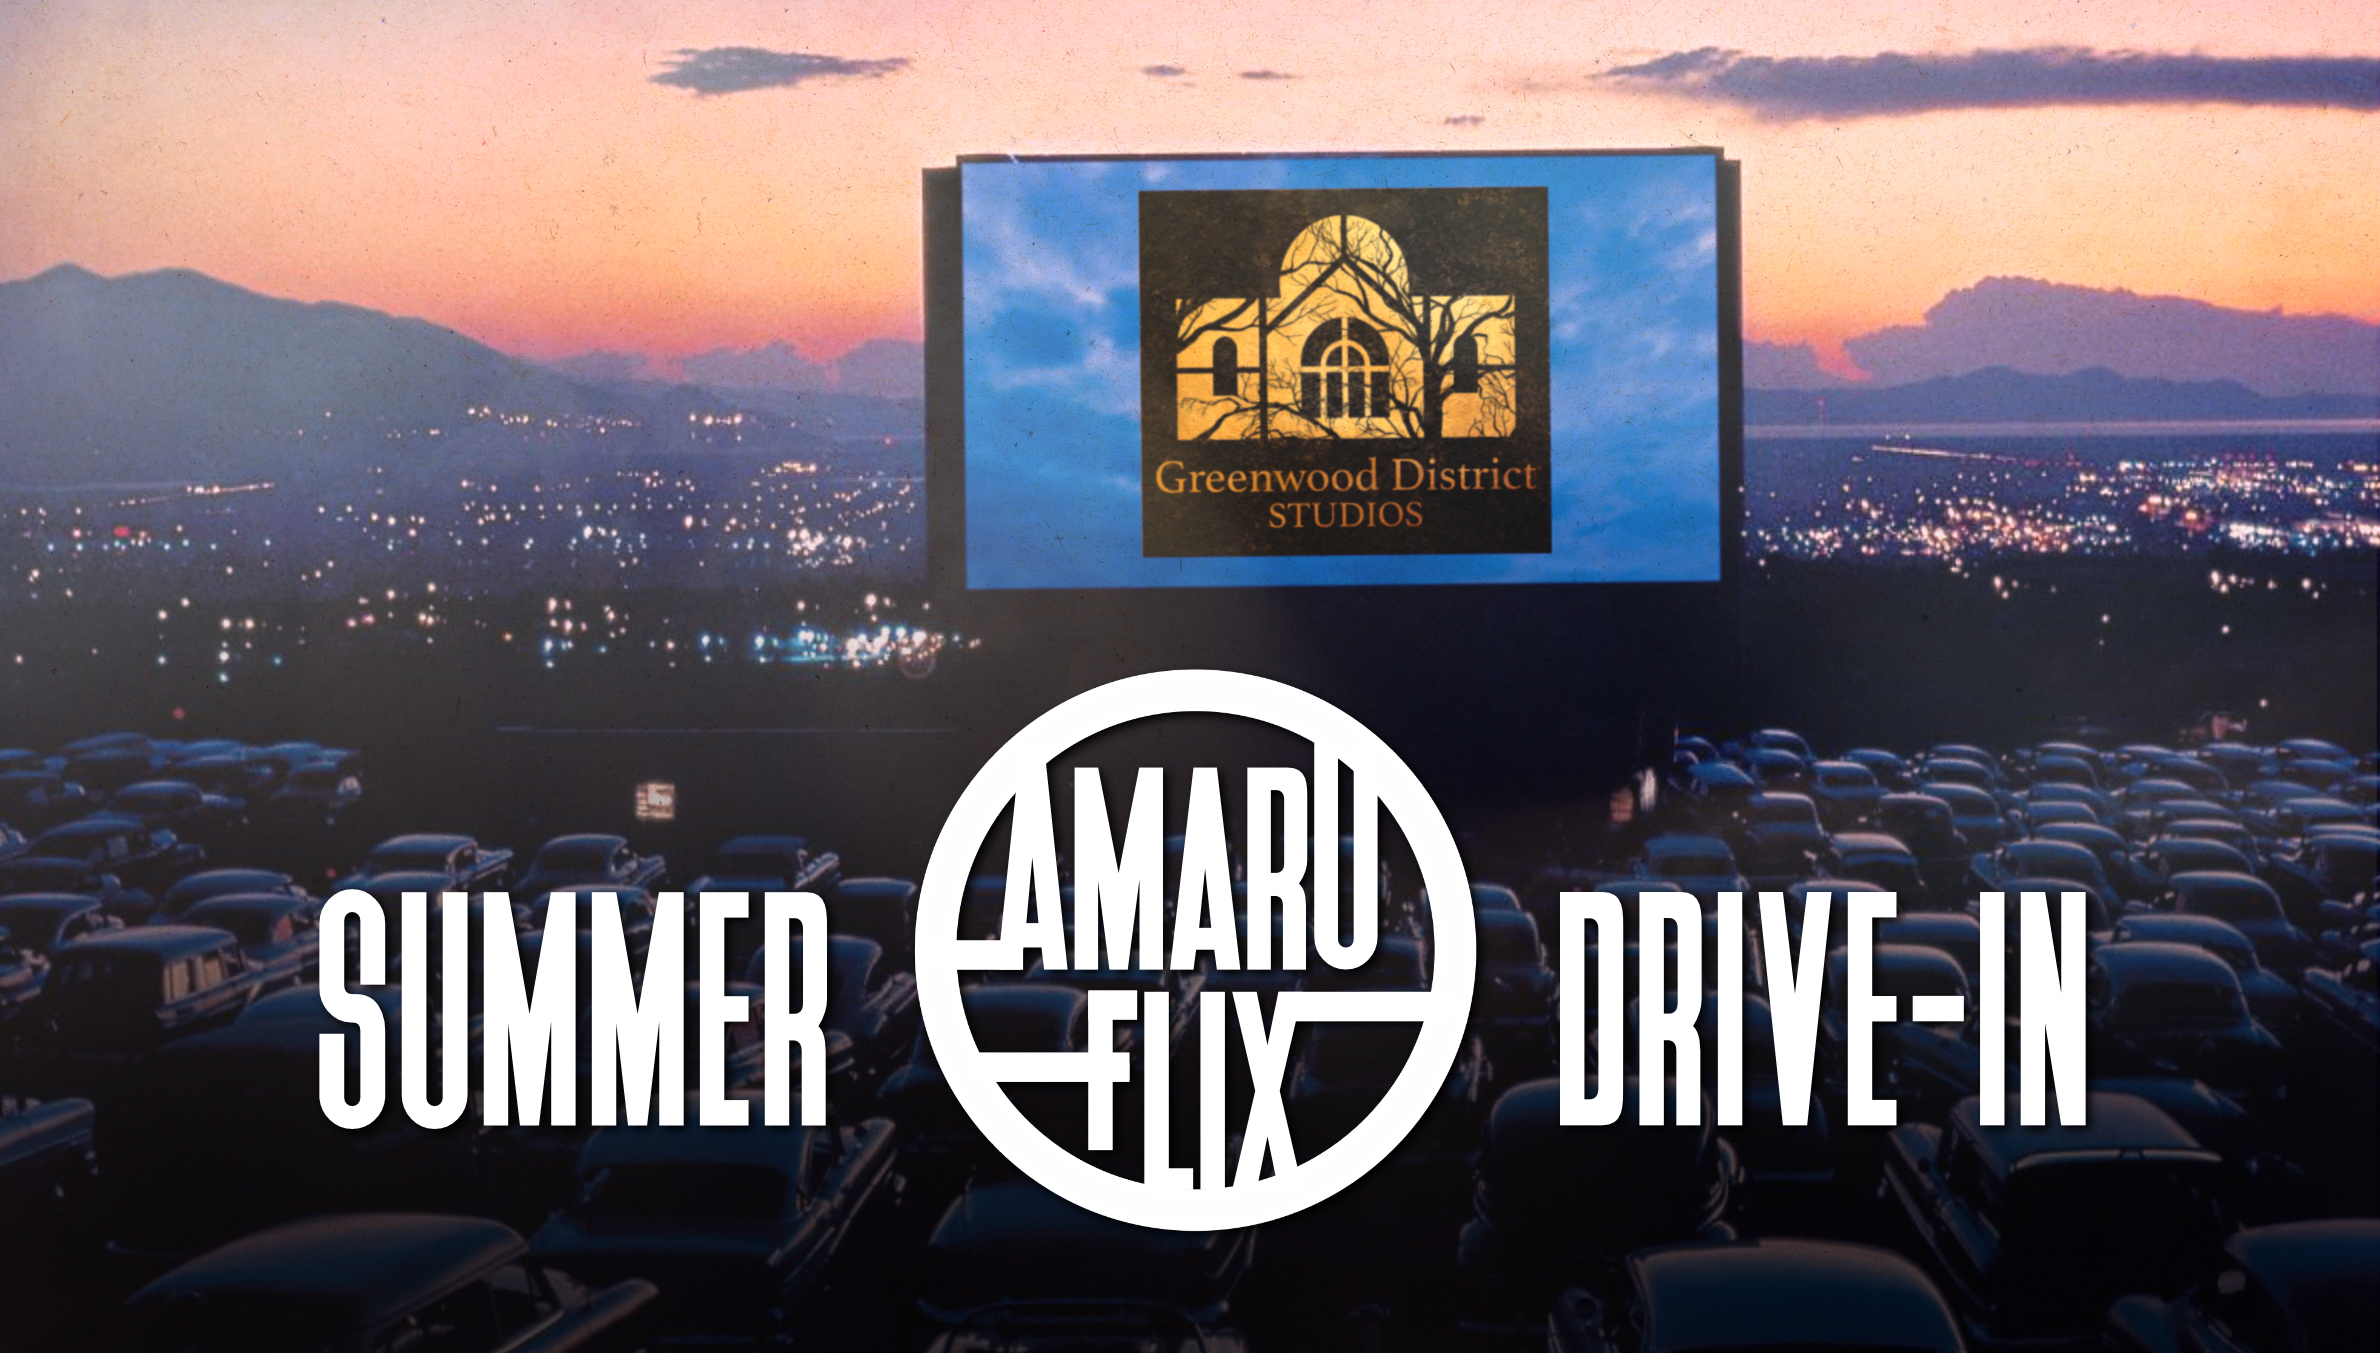 Amaru Flix Drive-In Large